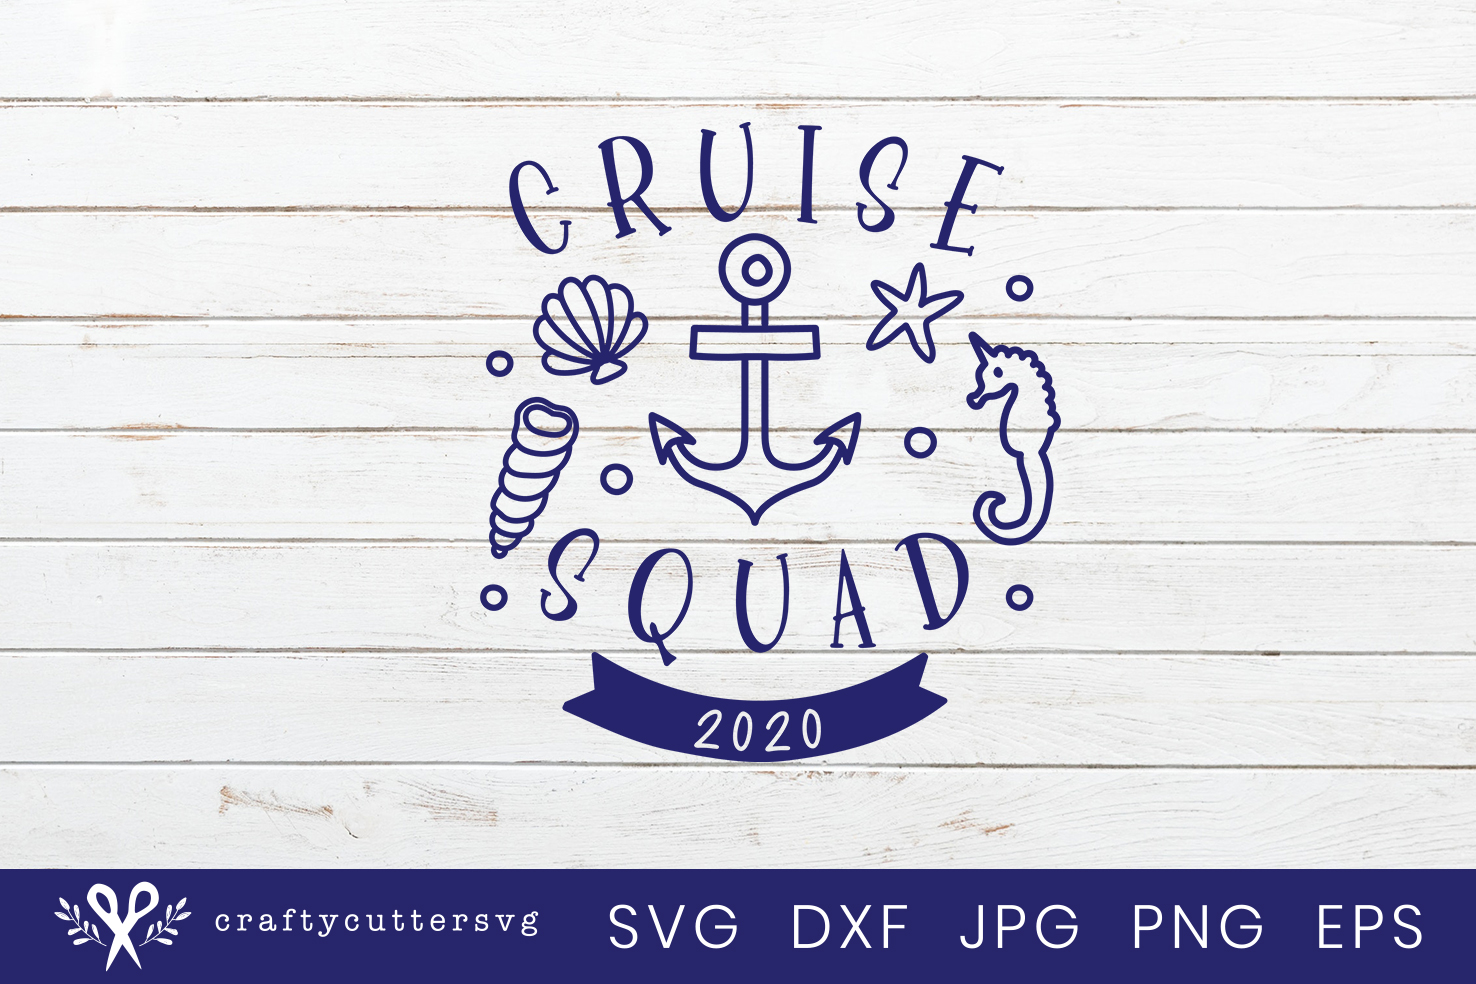 Cruise squad 2020 Svg Cut File Cocktail Shell Anchor Clipart example image 2